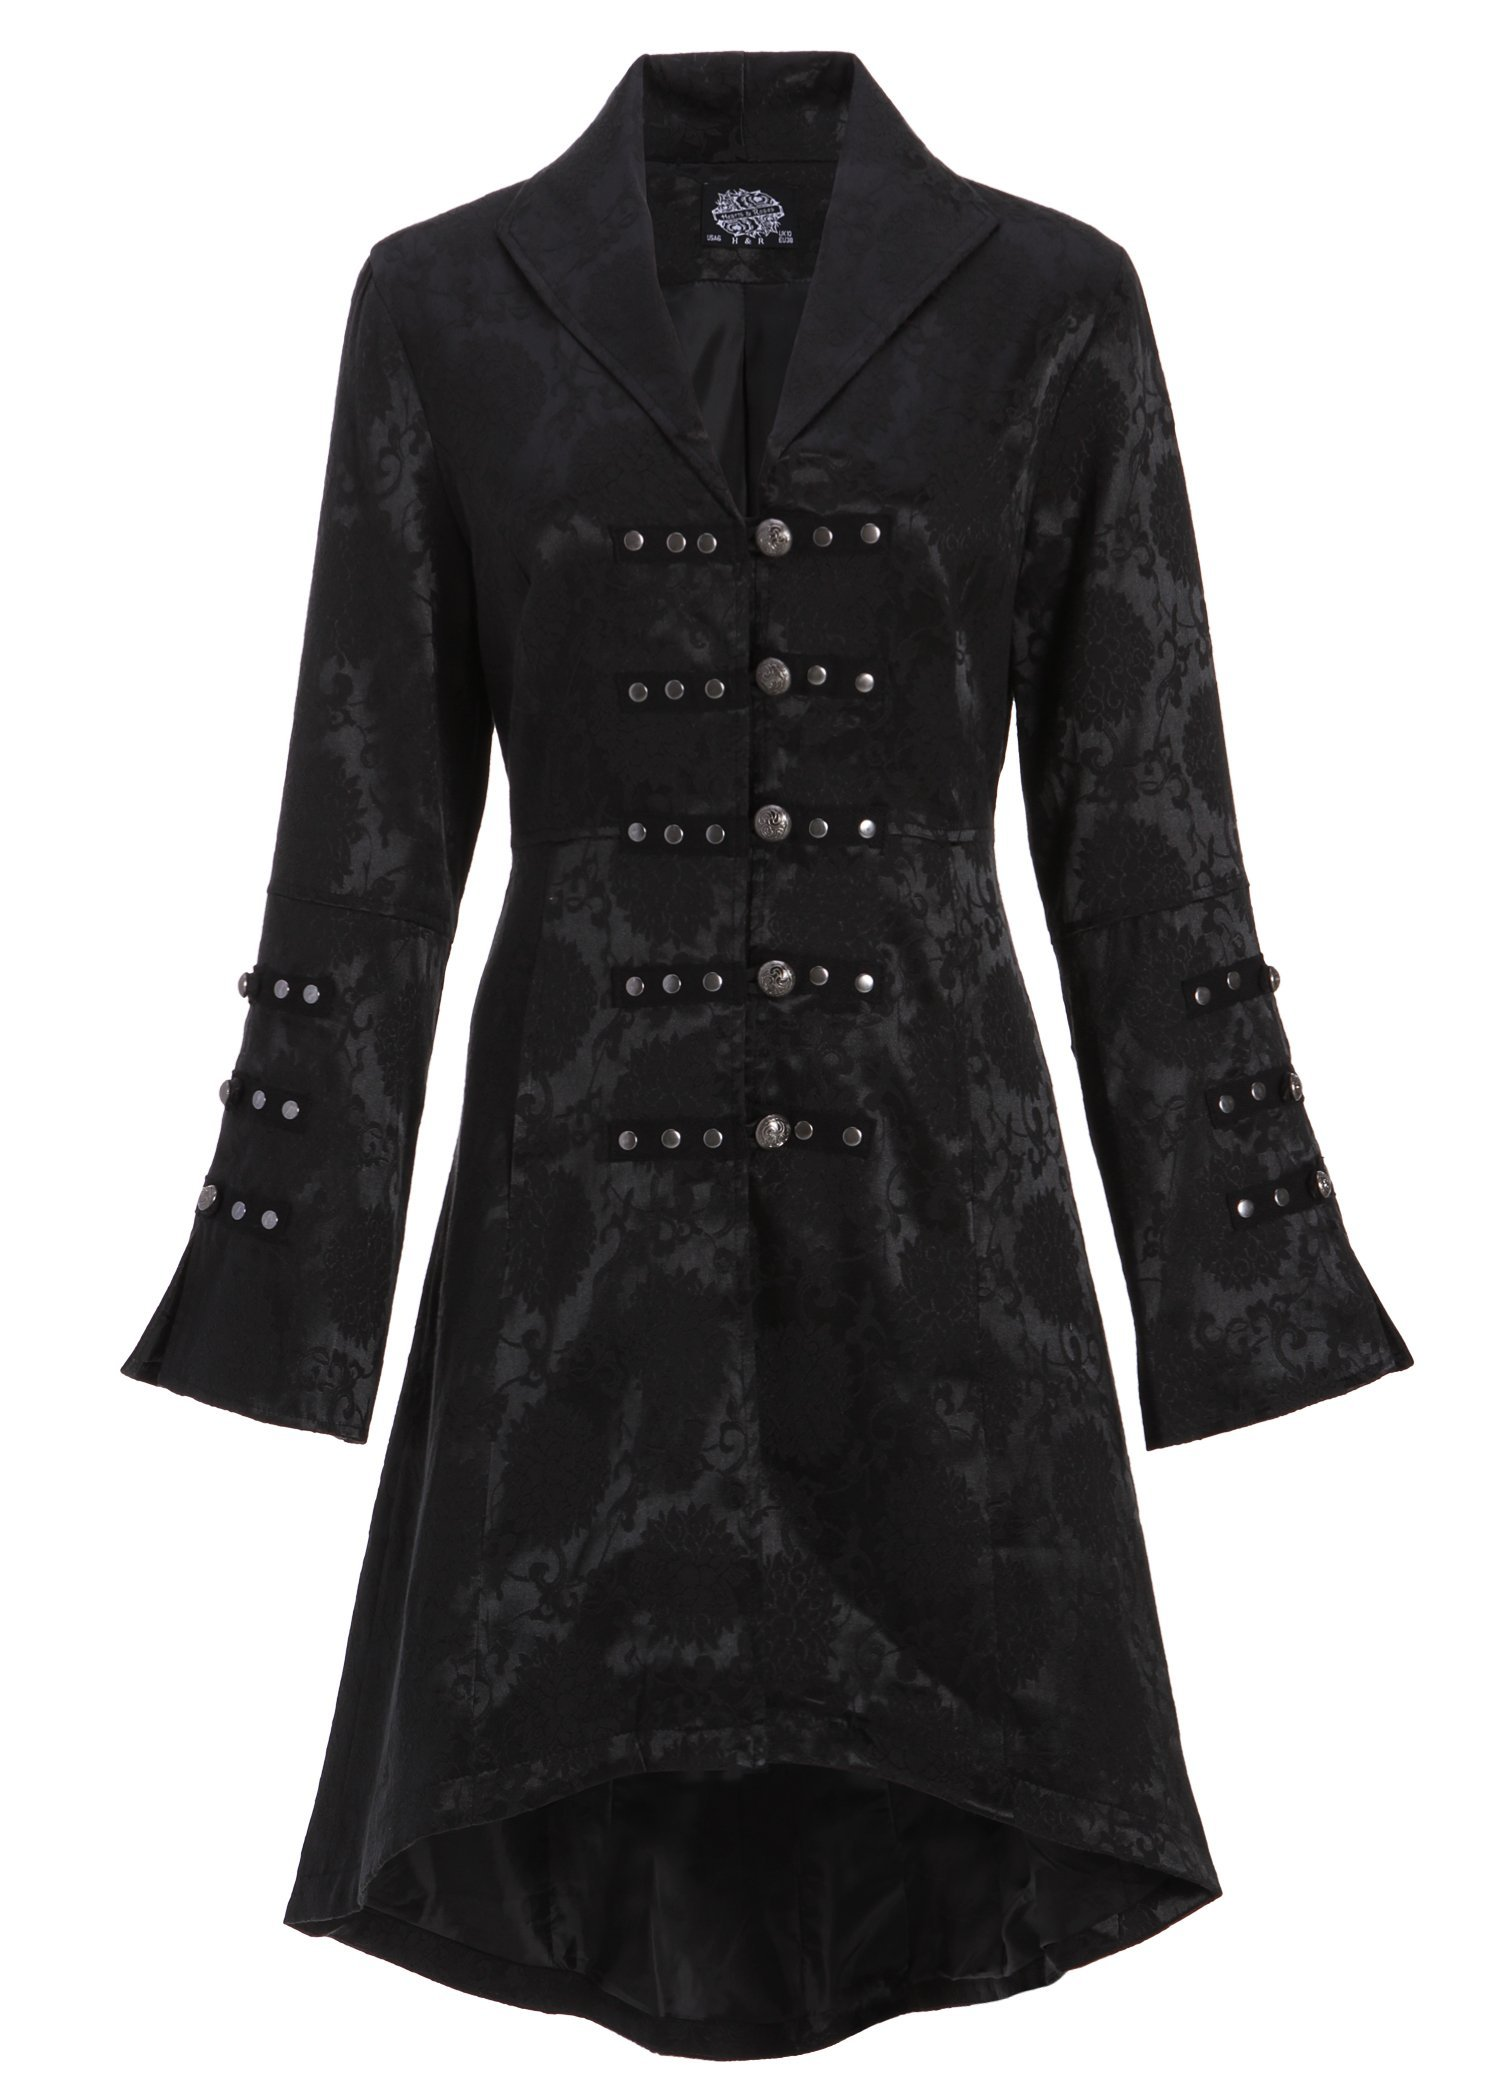 Womens Black Brocade Gothic Steampunk Floral Jacket Pirate Coat 3